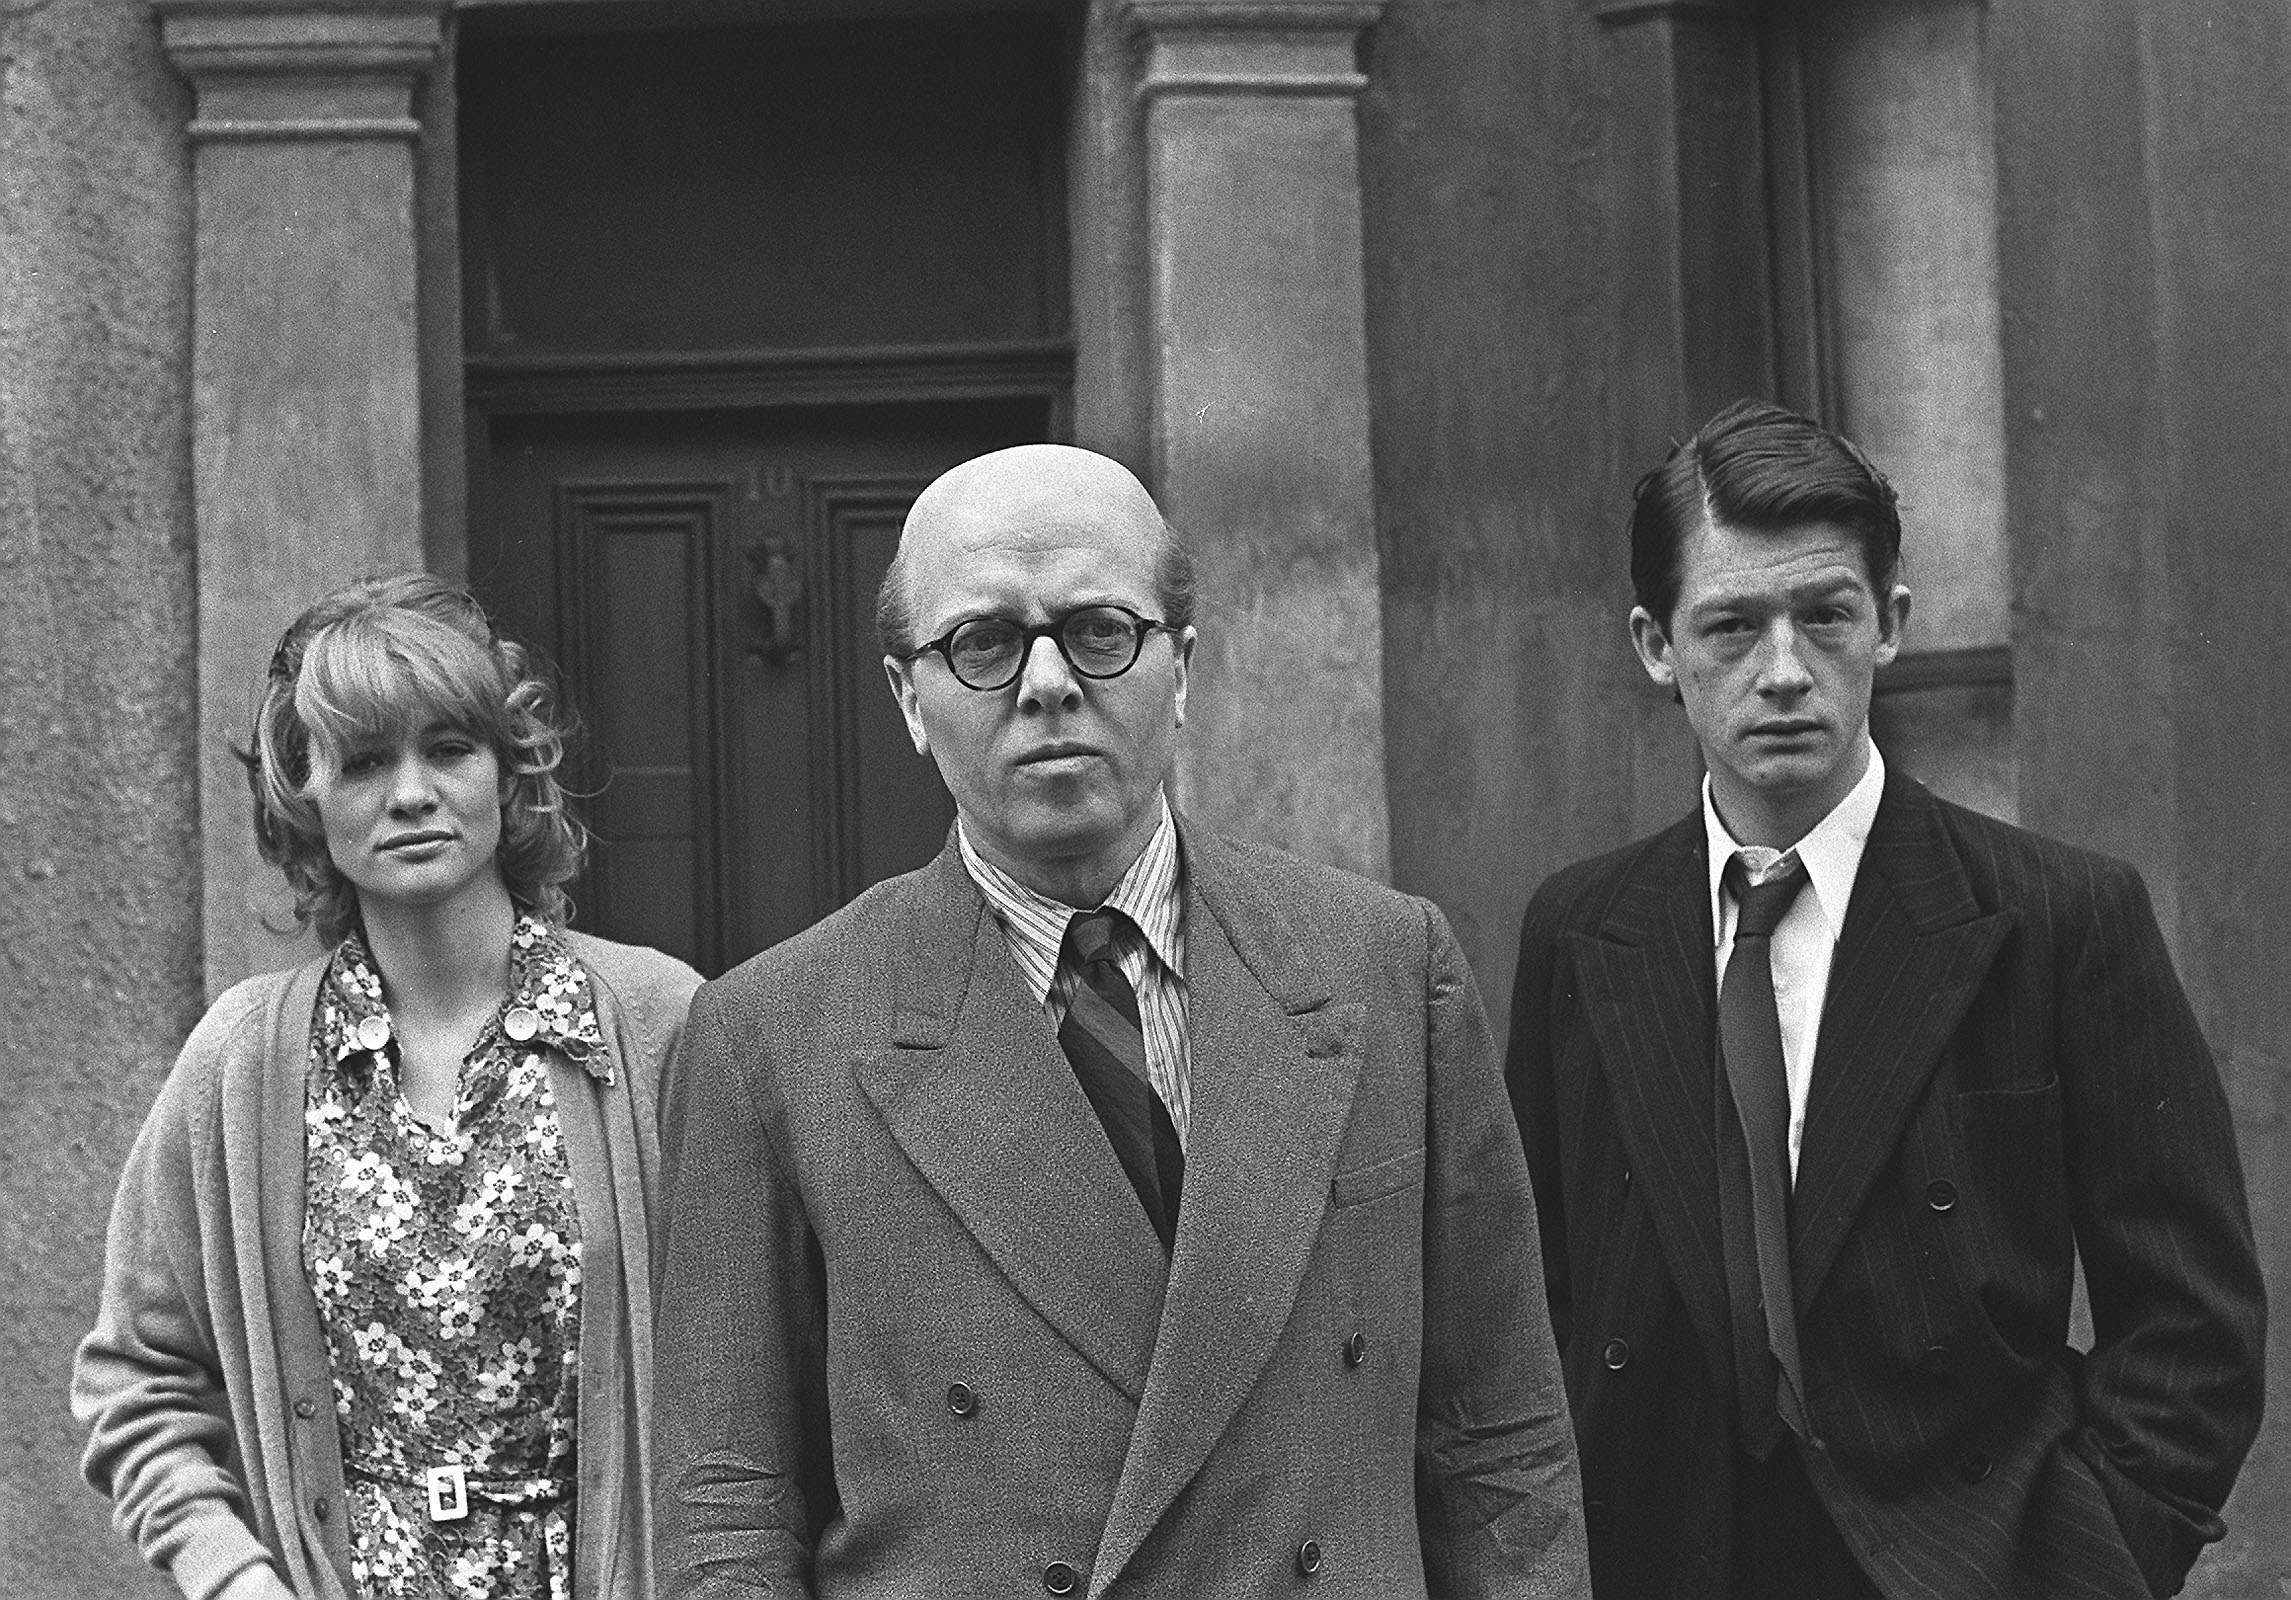 "Richard Attenborough, centre, in the chief role of mass-murderer John Reginald Christie, in the film ""10 Rillington Place"", in London, England, May 17, 1970. British actor John Hurt, right, plays Timothy John Evans and British actress Judy Geeson plays Mrs. Evans. (AP Photo/Staff/Dear)."